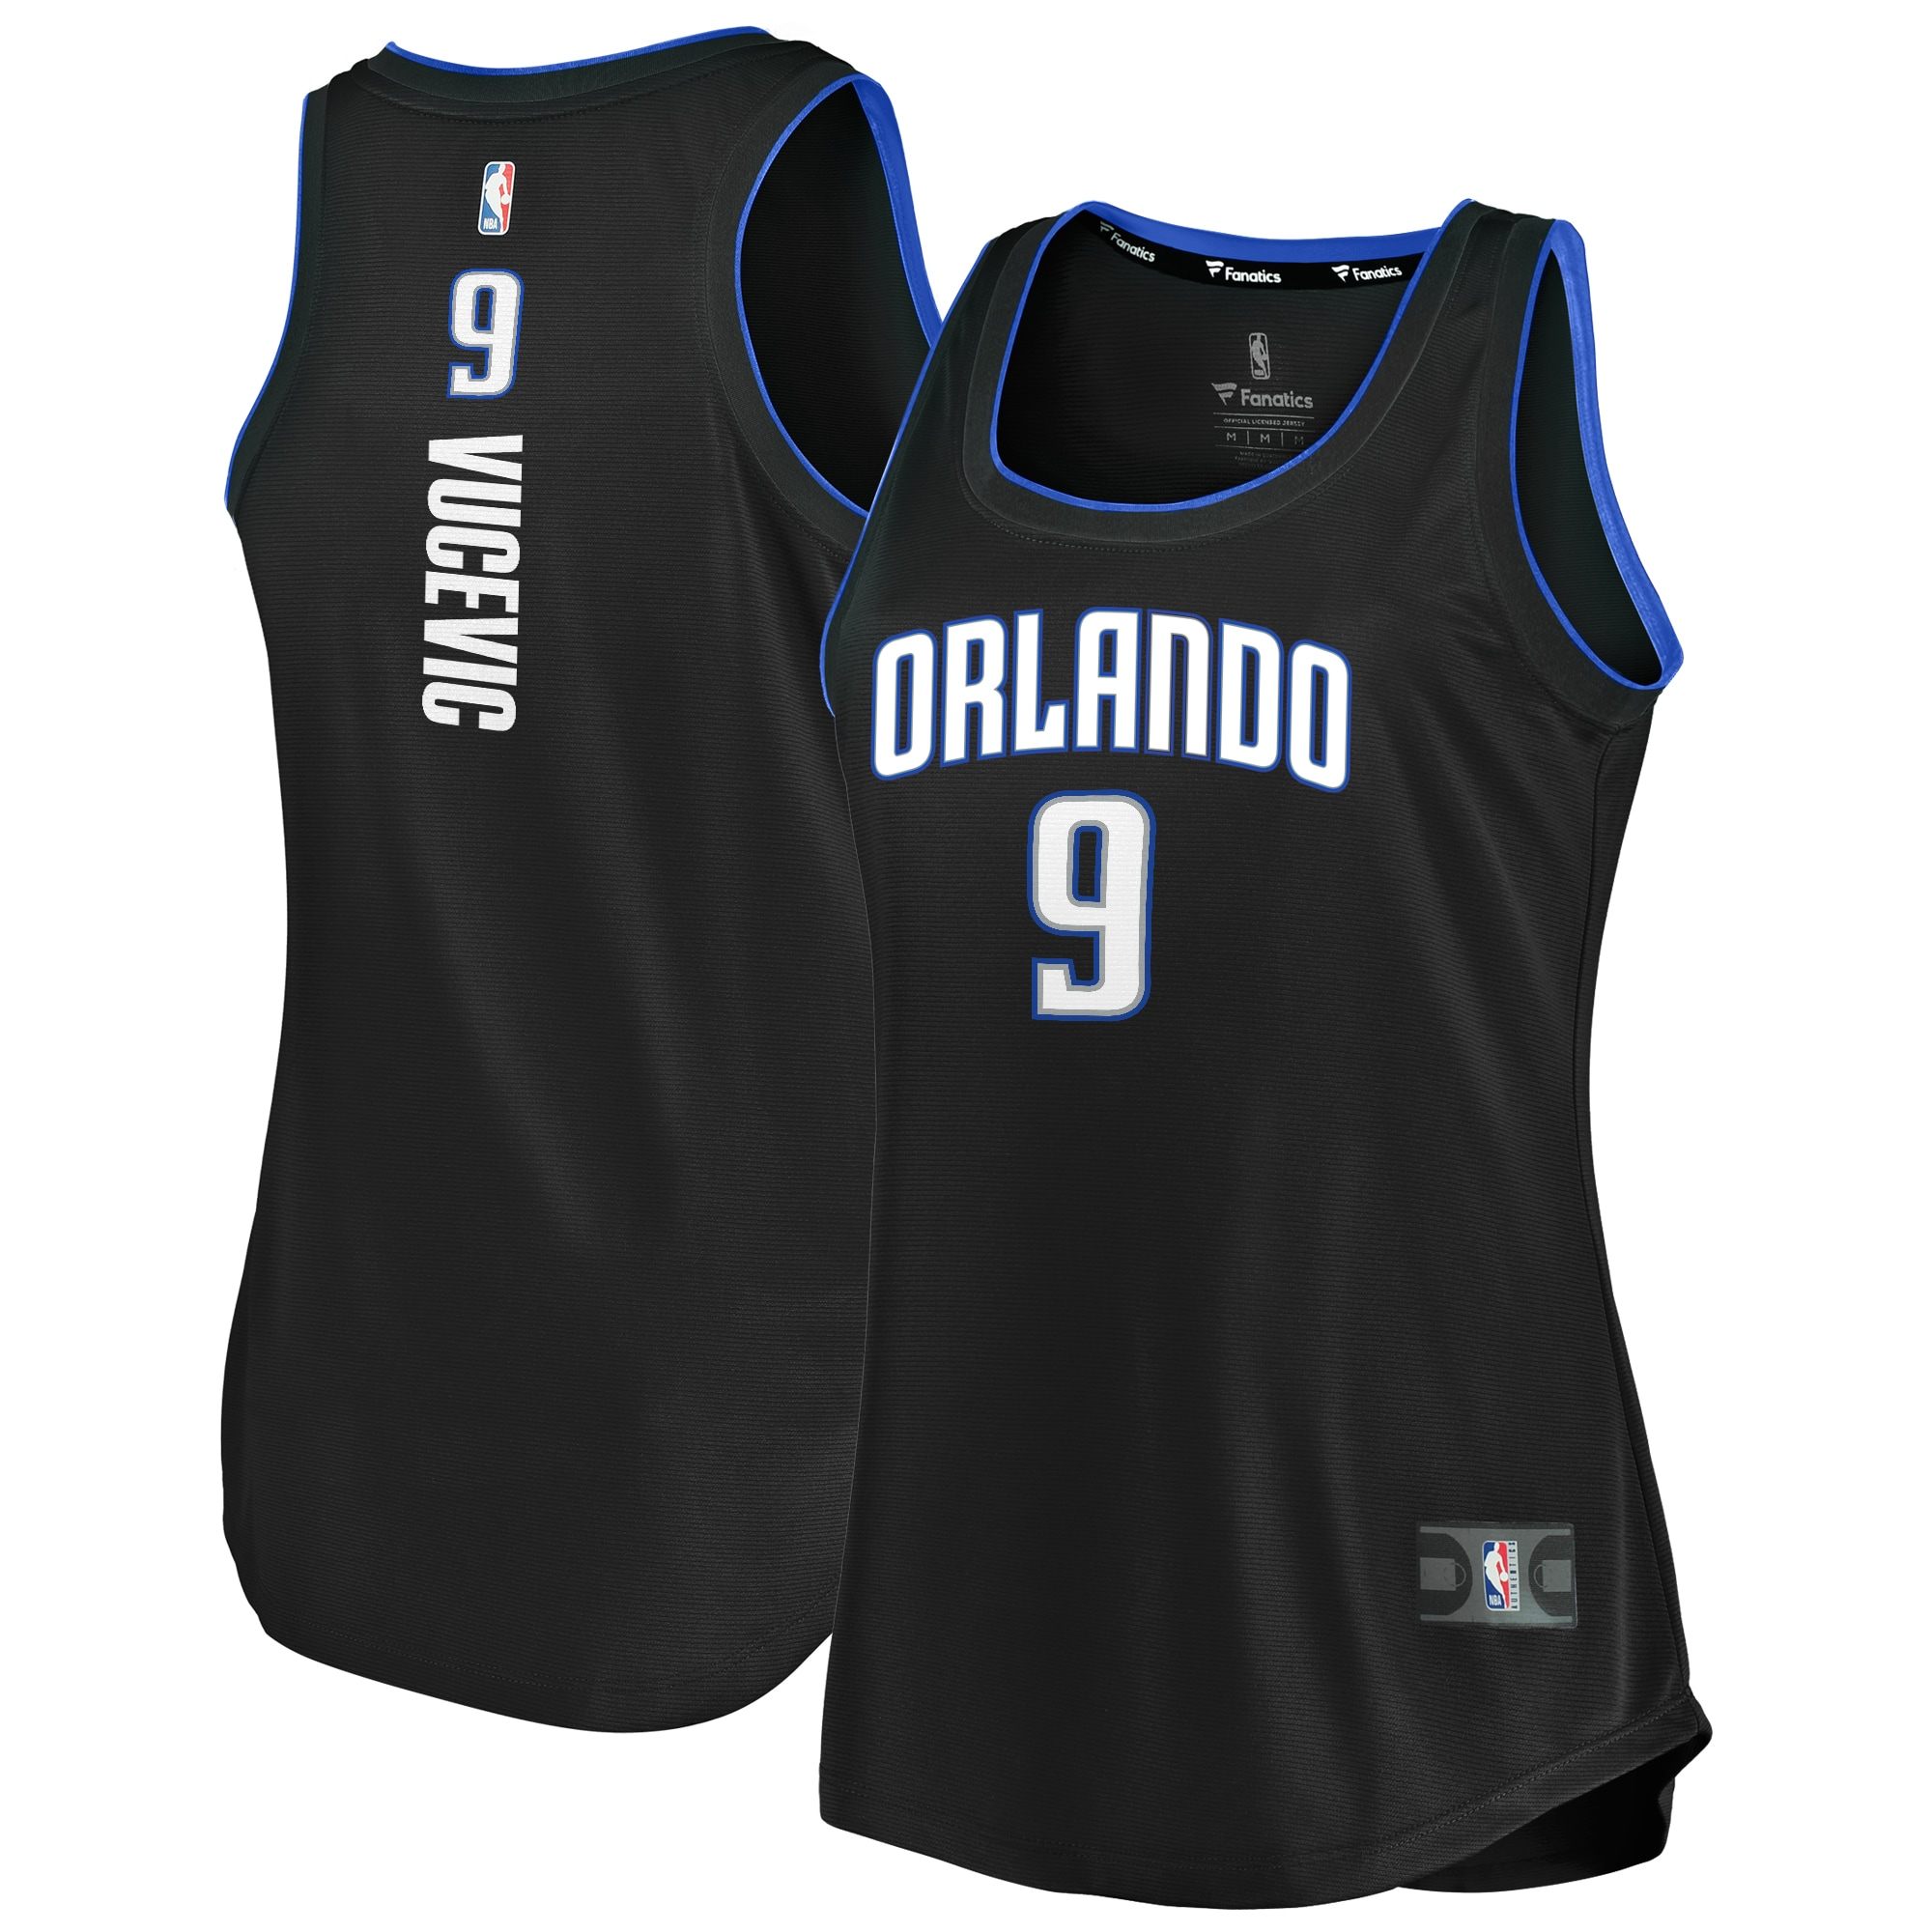 Nikola Vucevic Orlando Magic Fanatics Branded Women's 2019/20 Fast Break Team Tank Jersey - Icon Edition - Black